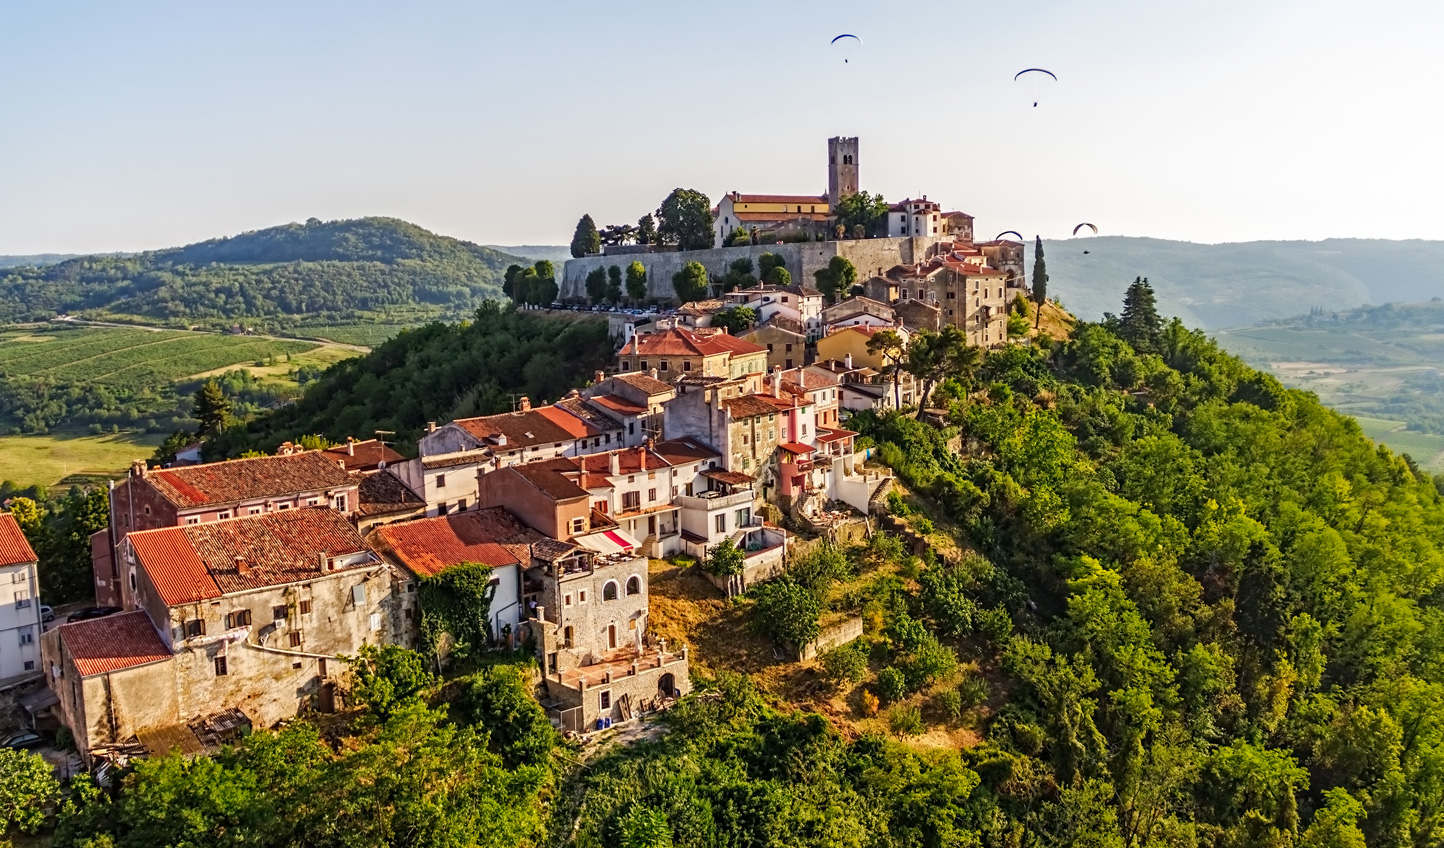 Motovun, one of the surrounding towns for truffle hunting